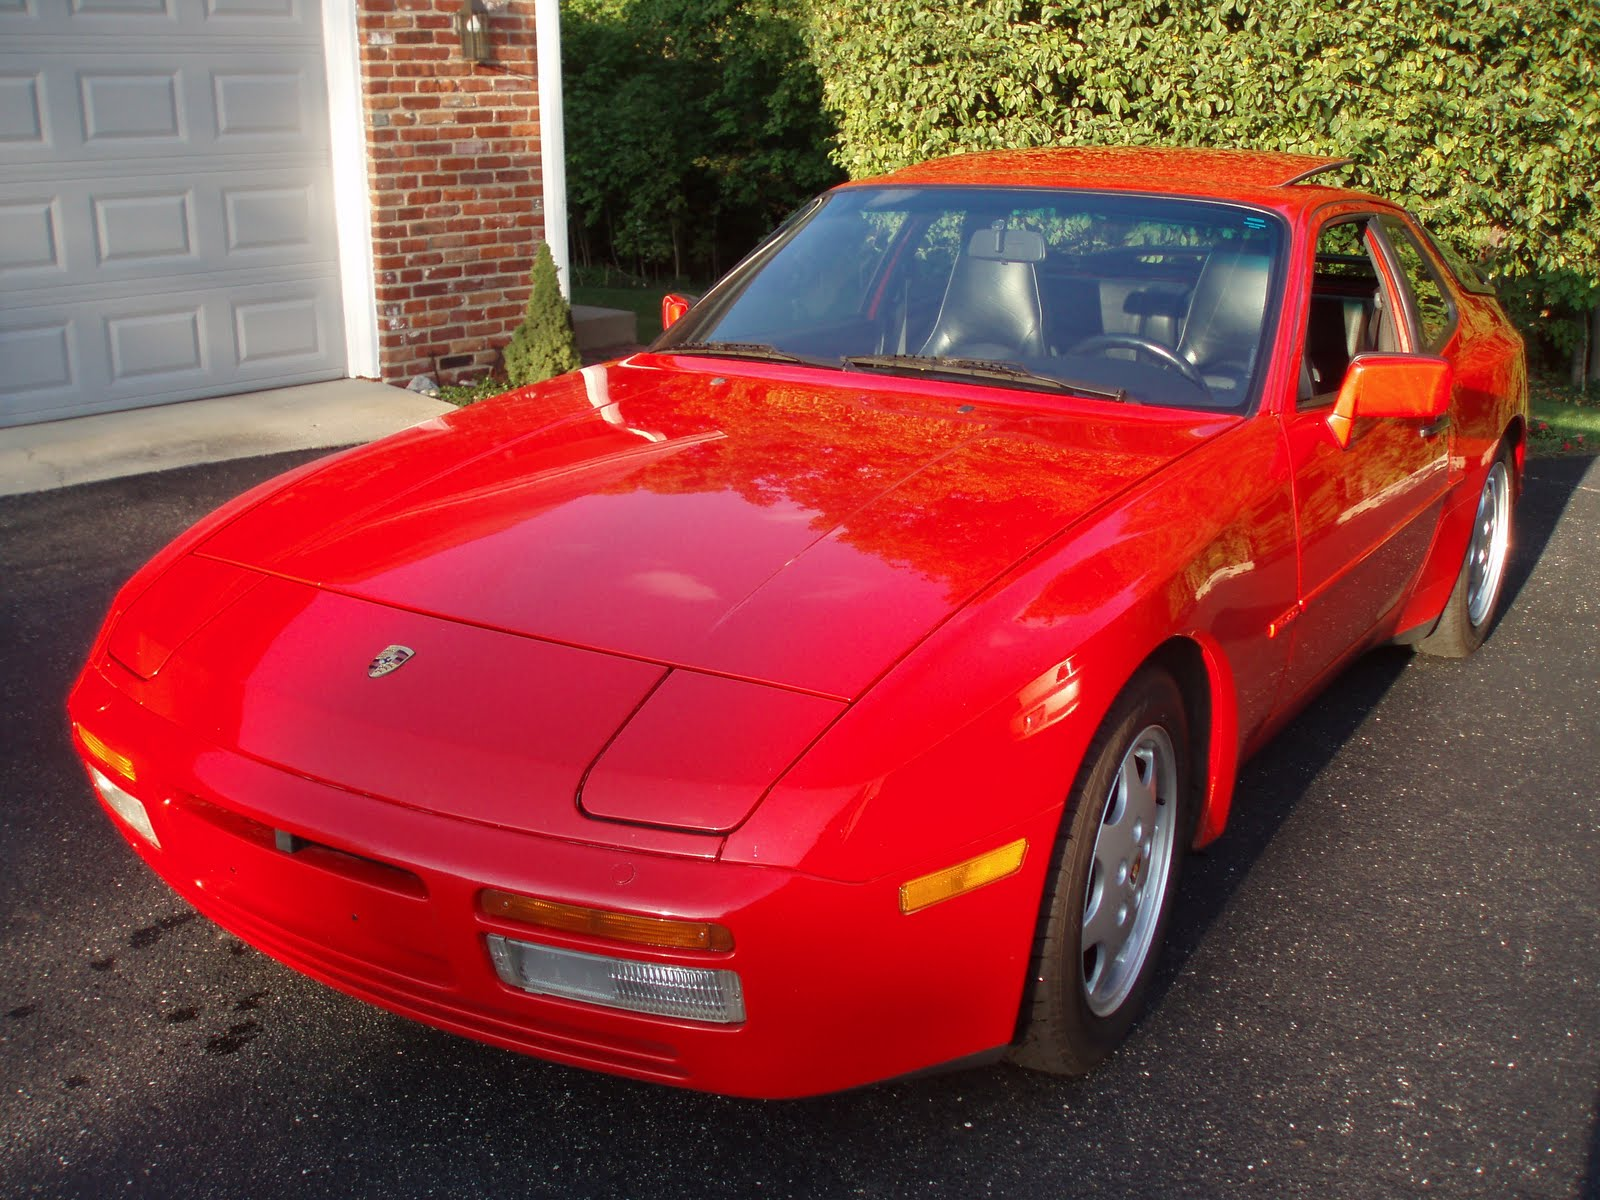 How Much Does It Cost To Drive A 19 Year Old Porsche Let Me Introduce You My 1991 944s2